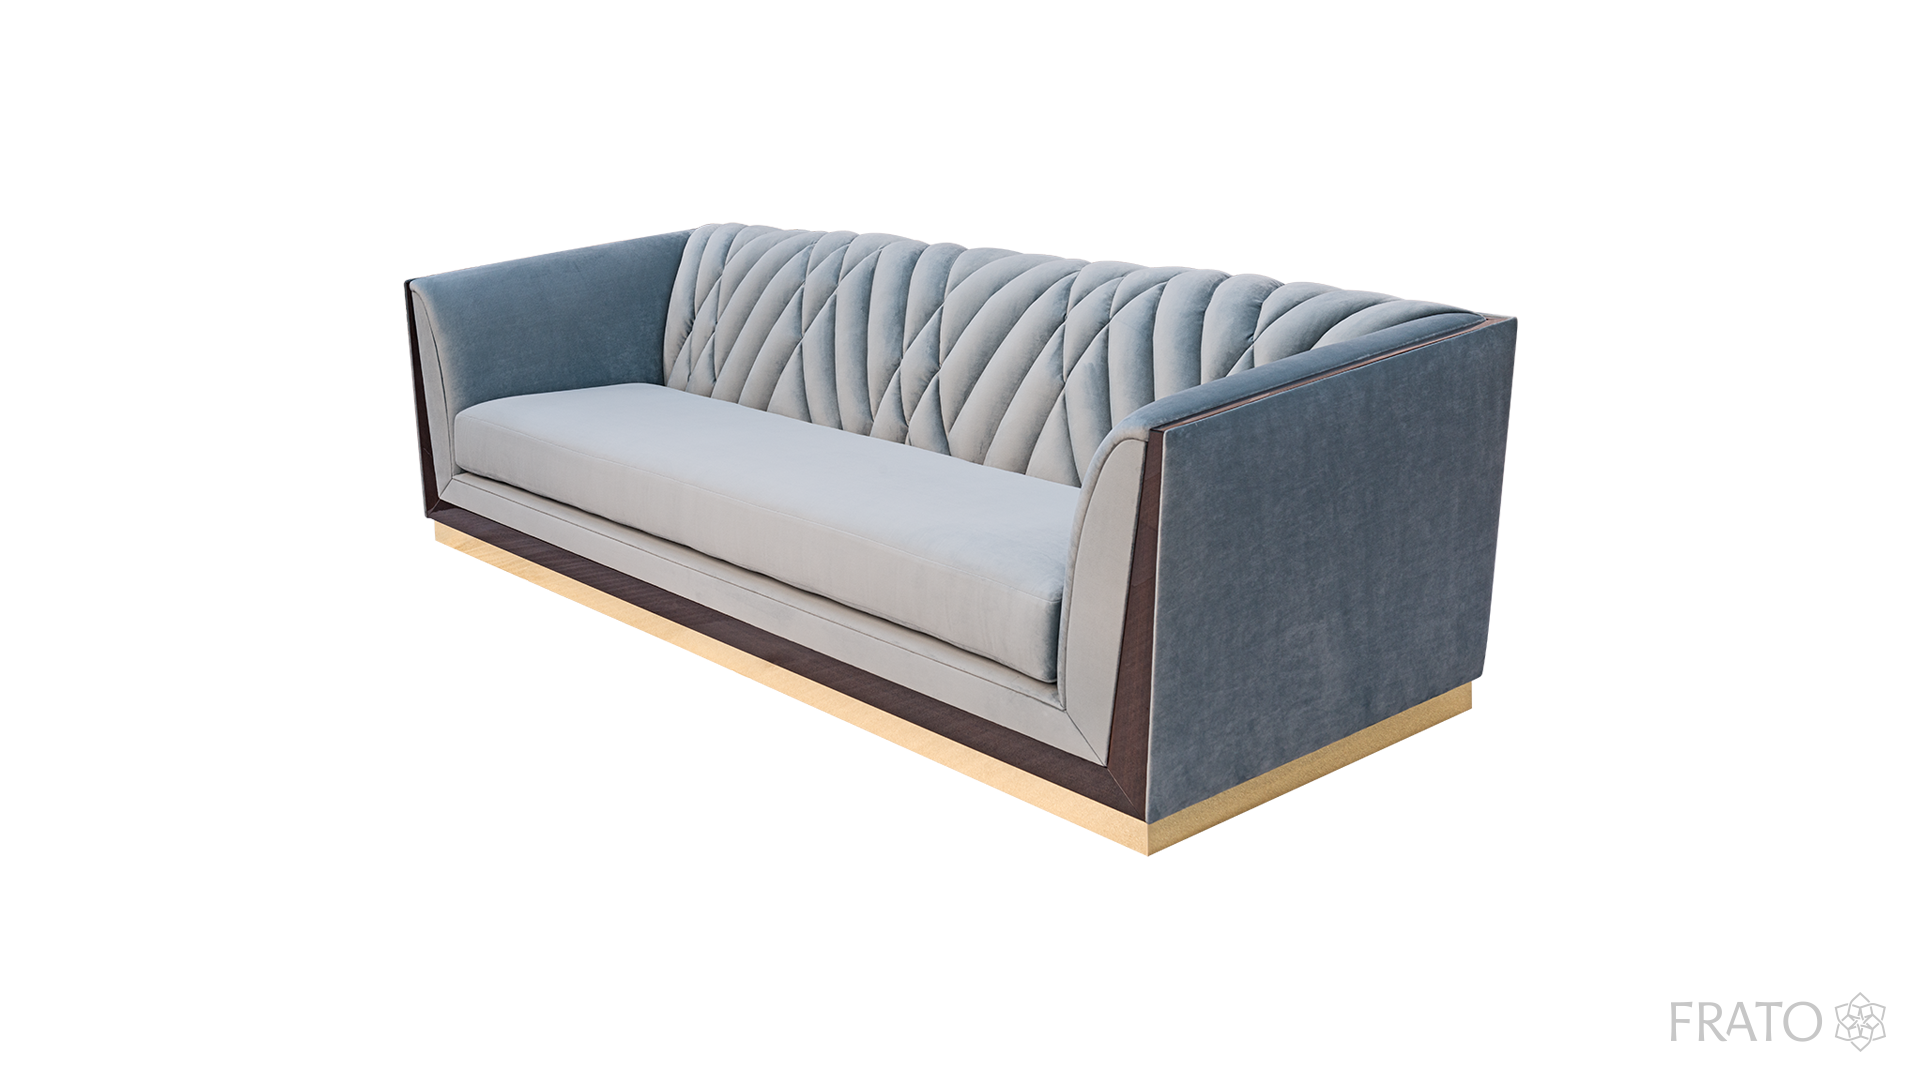 Cambridge Frato Interiors Chesterfield Sofa Sectional Chair Furniture Showroom